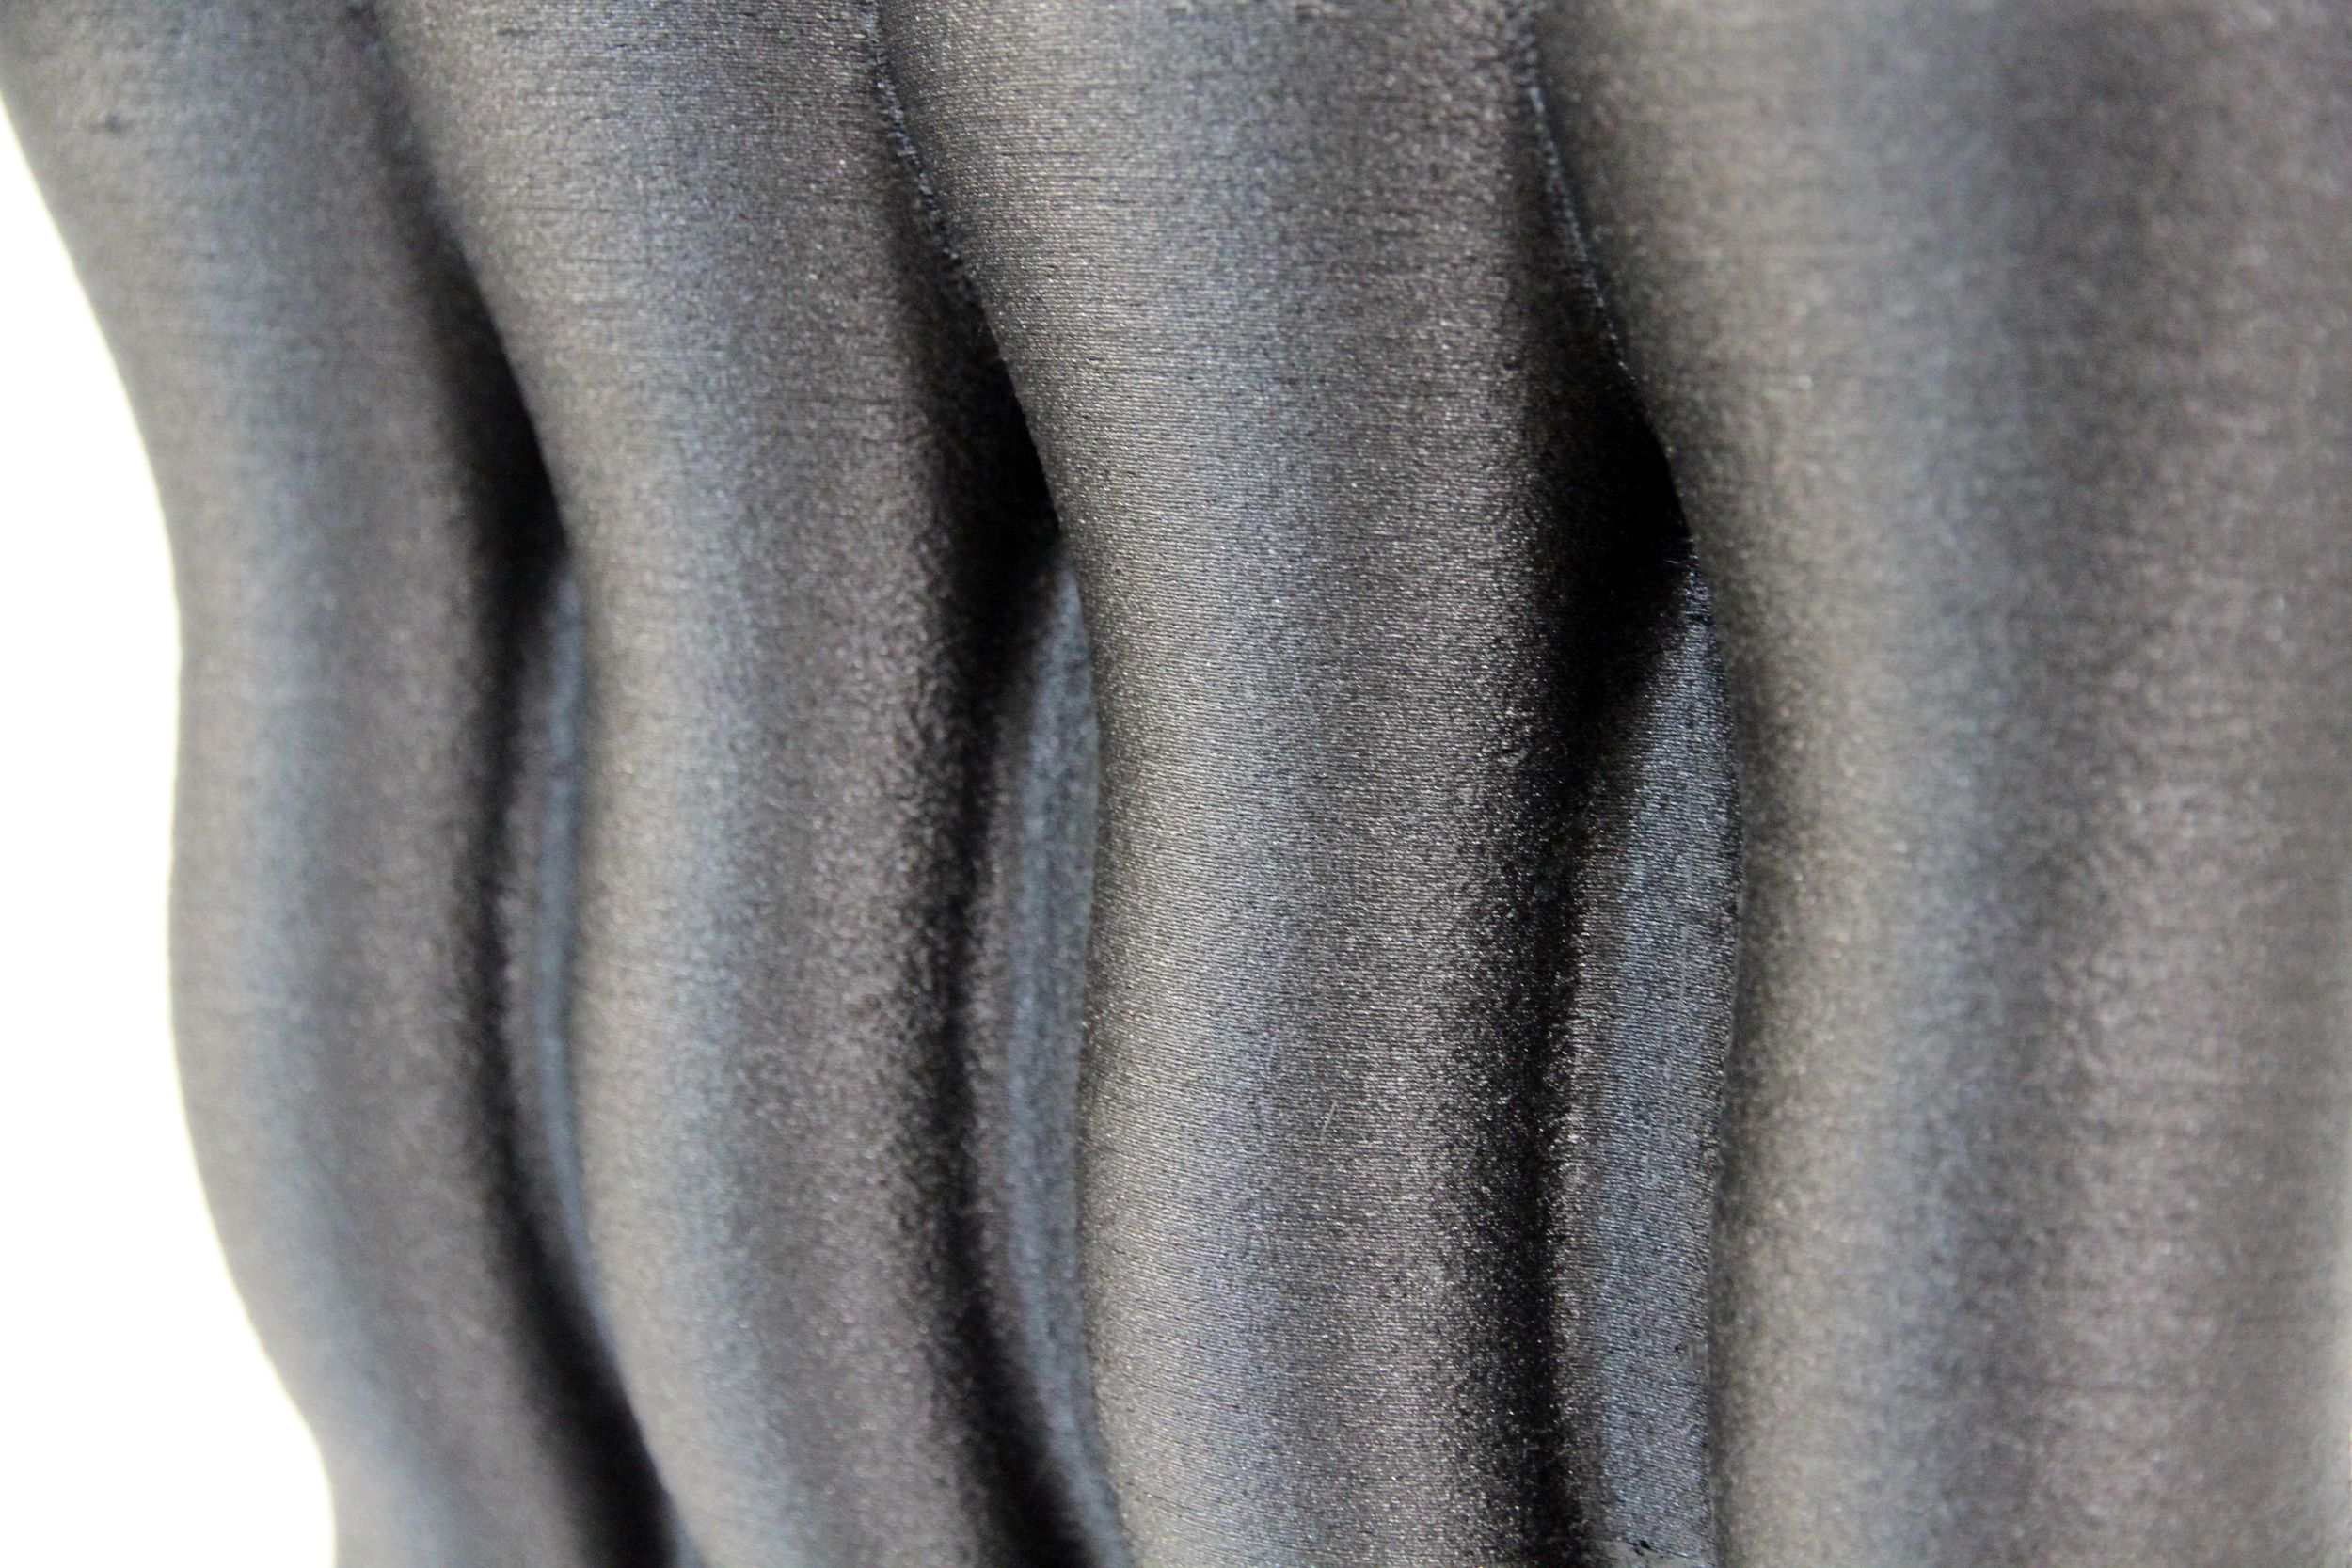 Carbon fiber closeup 2.jpg